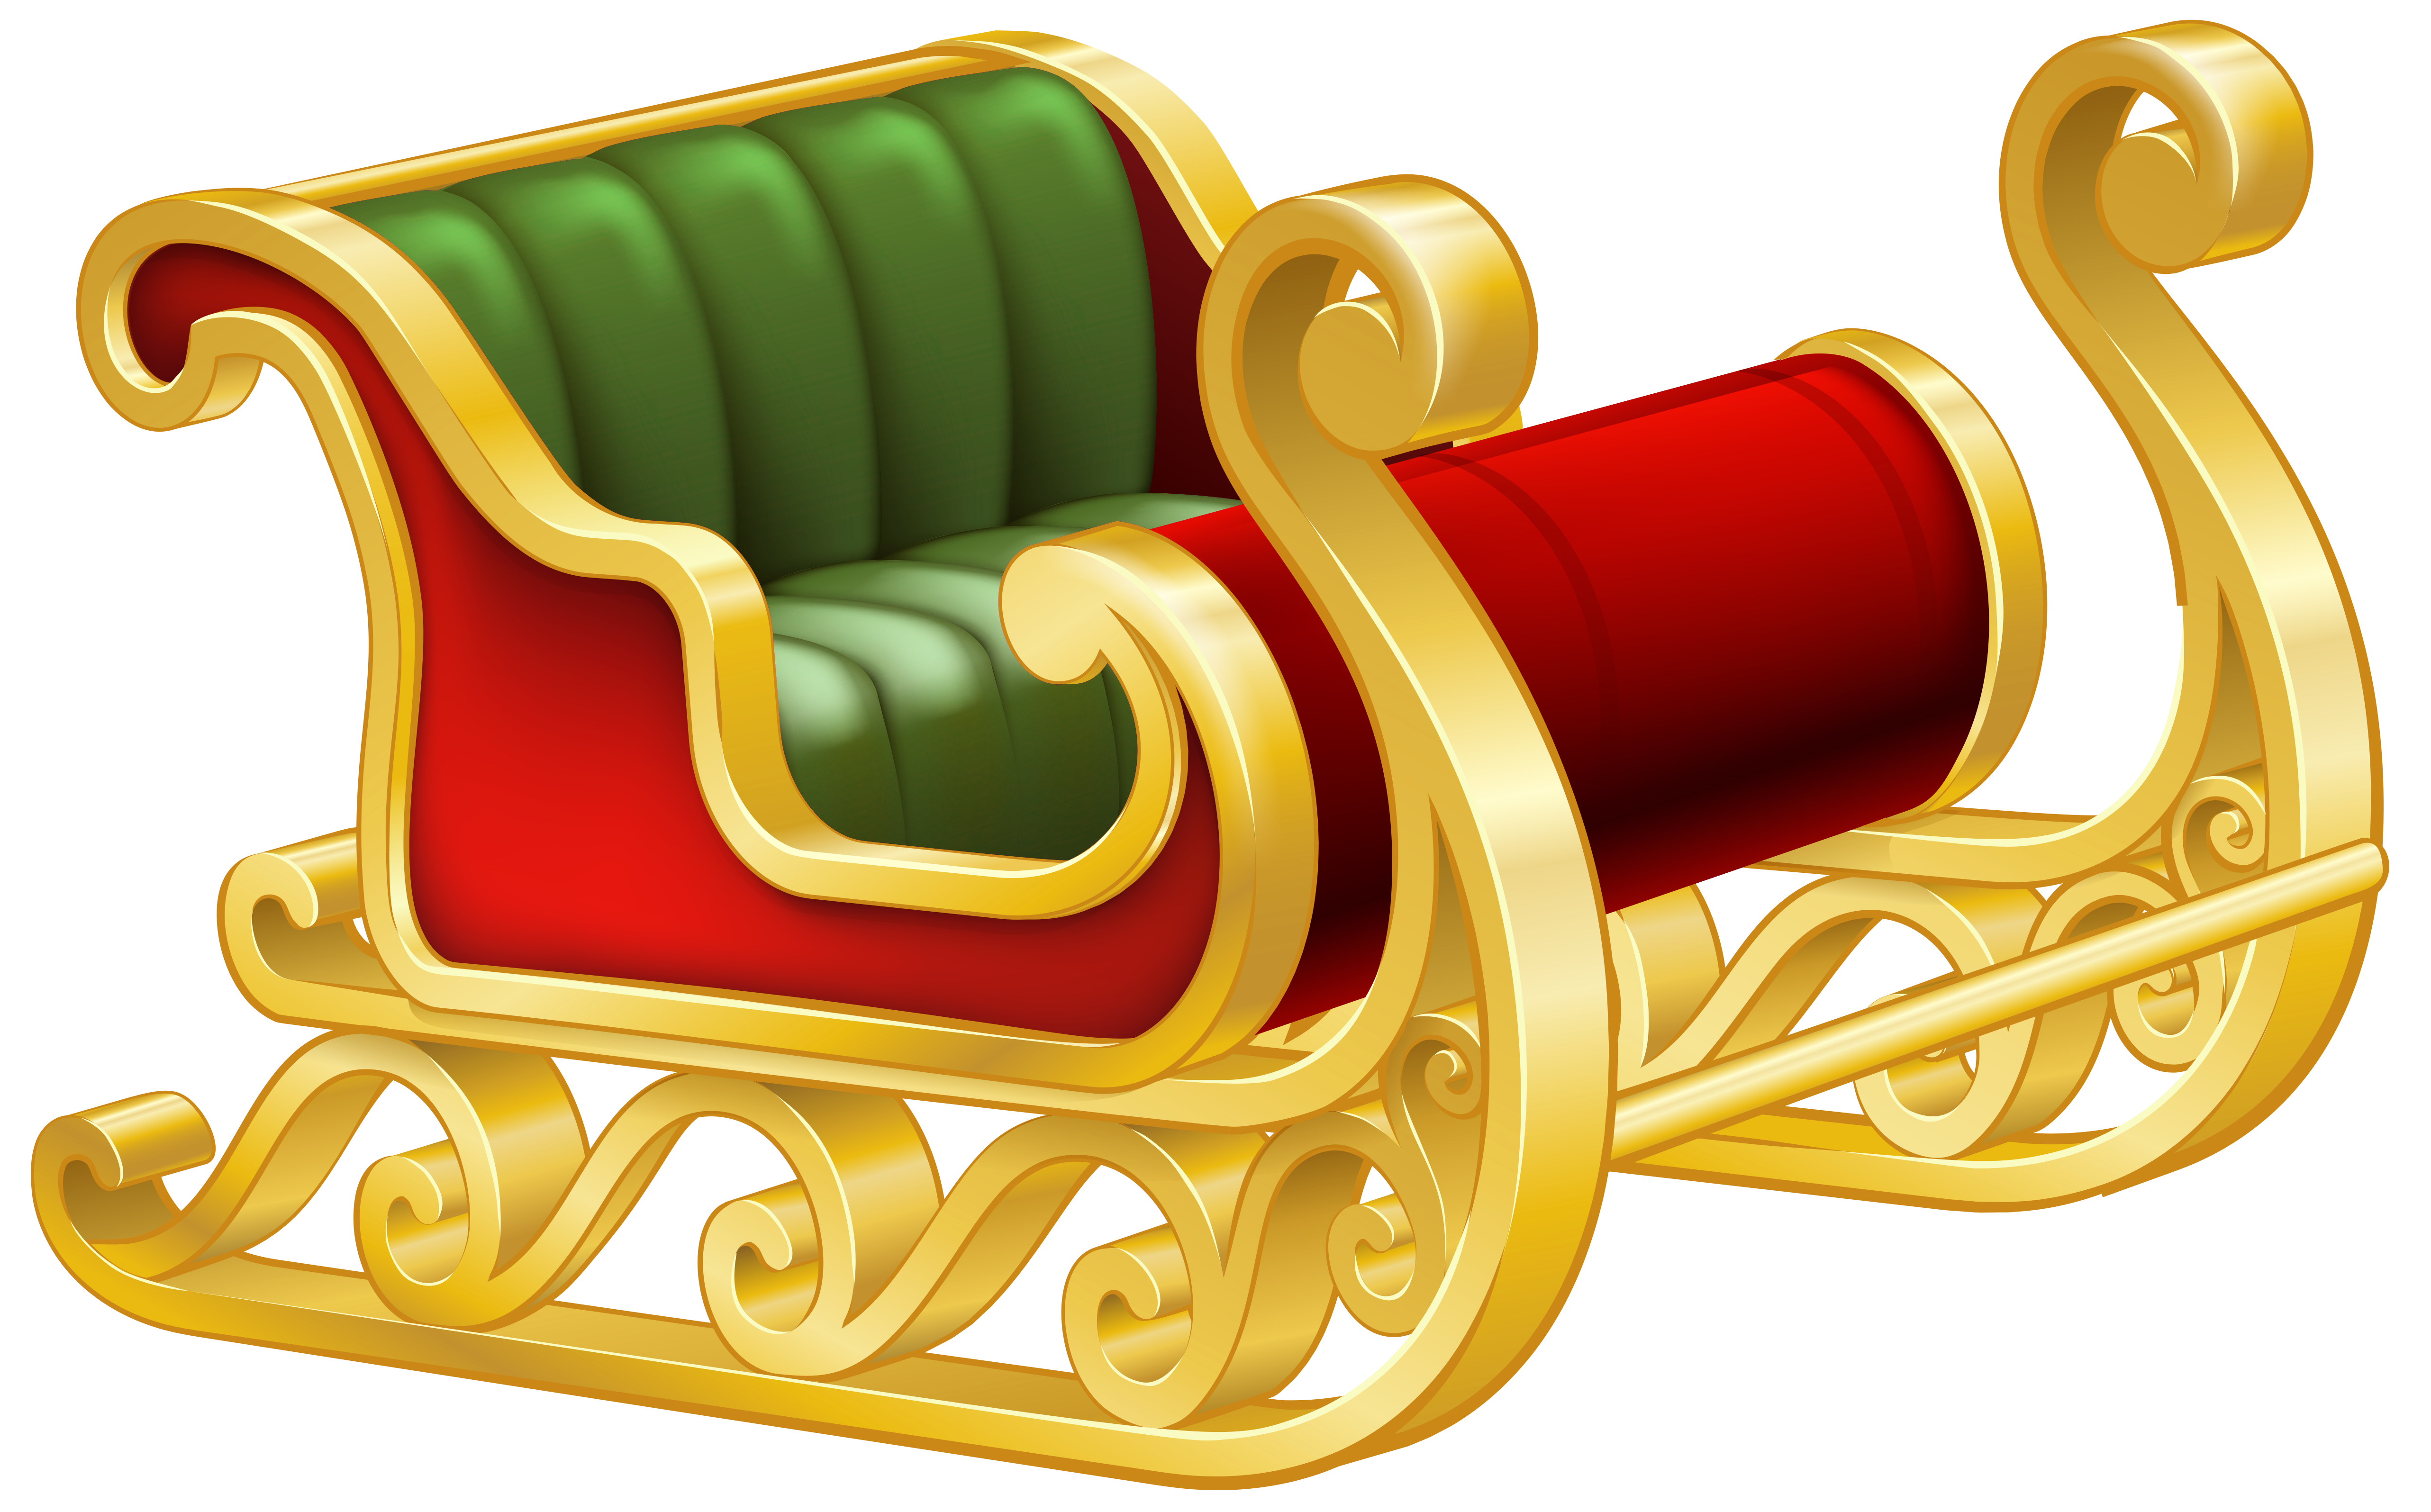 Free to use thanksgiving psp clipart graphic freeuse library Santa Sleigh PNG Clip Art Image | Gallery Yopriceville - High ... graphic freeuse library